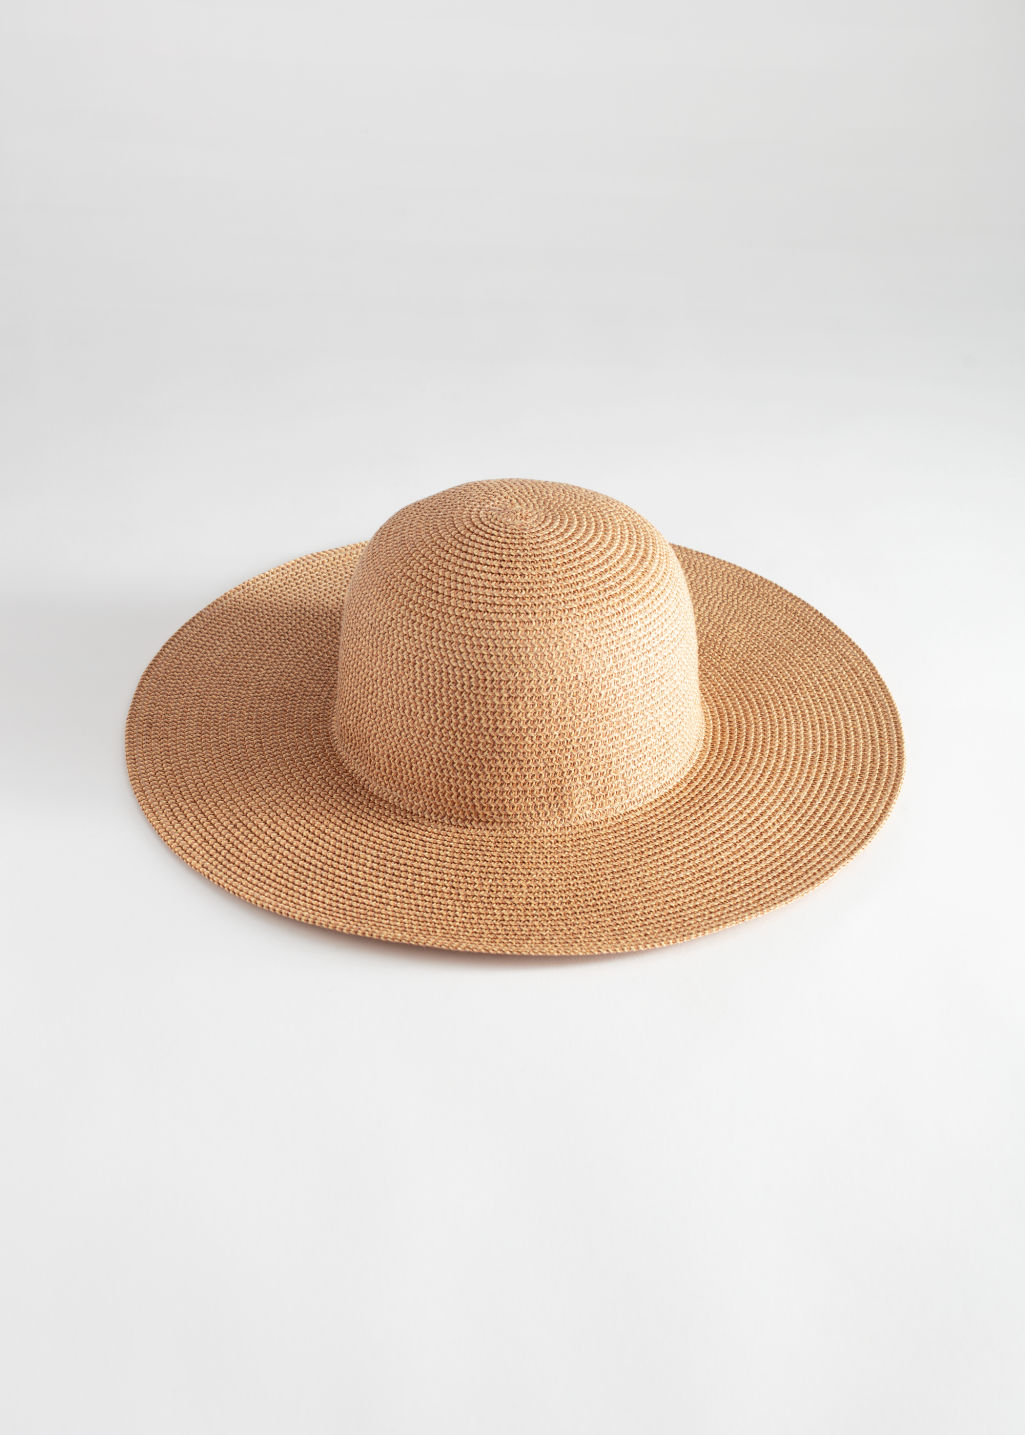 1bdc8453 Wide Brim Straw Hat - Beige - Hats - & Other Stories